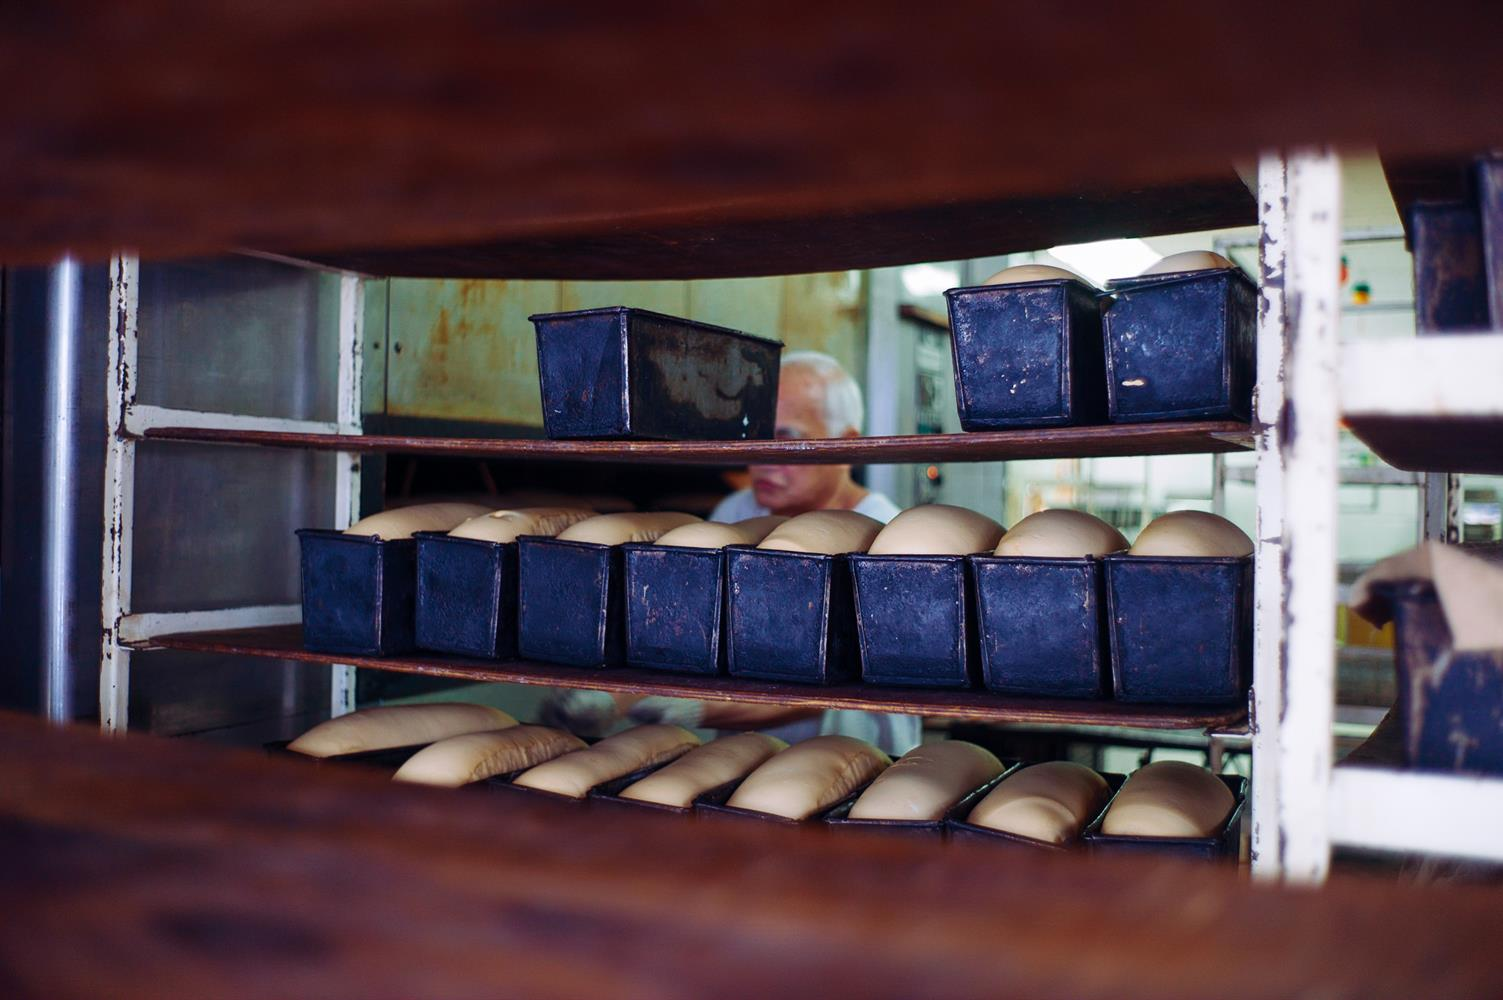 LEICA PHOTOWALK: THE TRADITIONAL BREADMAKERS - 23 JAN 2021